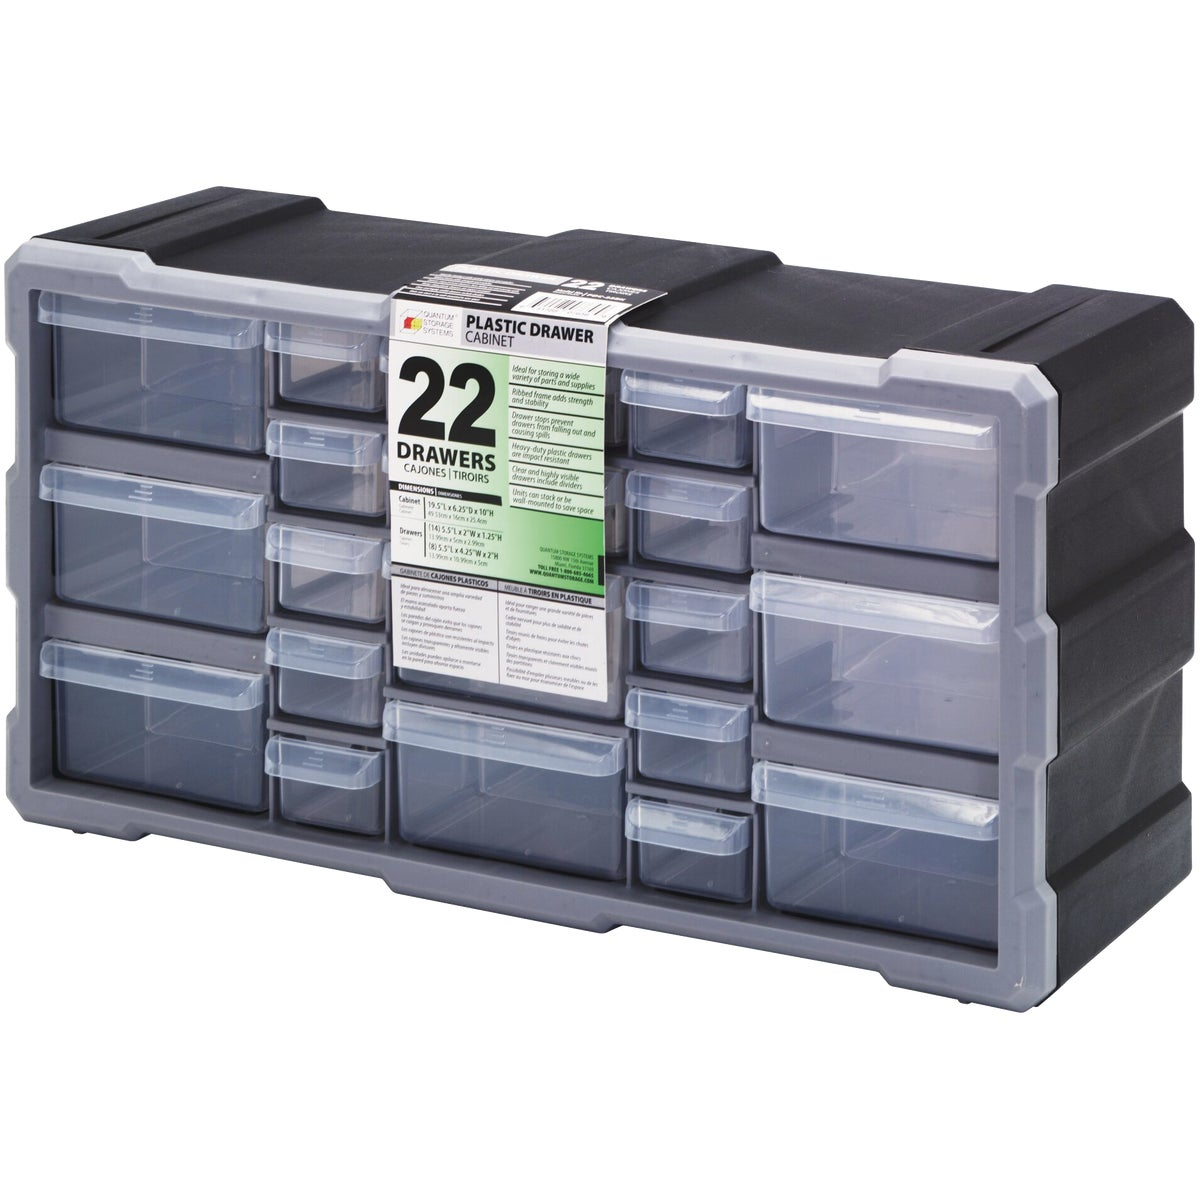 27 DRWR STORAGE CABINET - DS-27 by Stack On Products